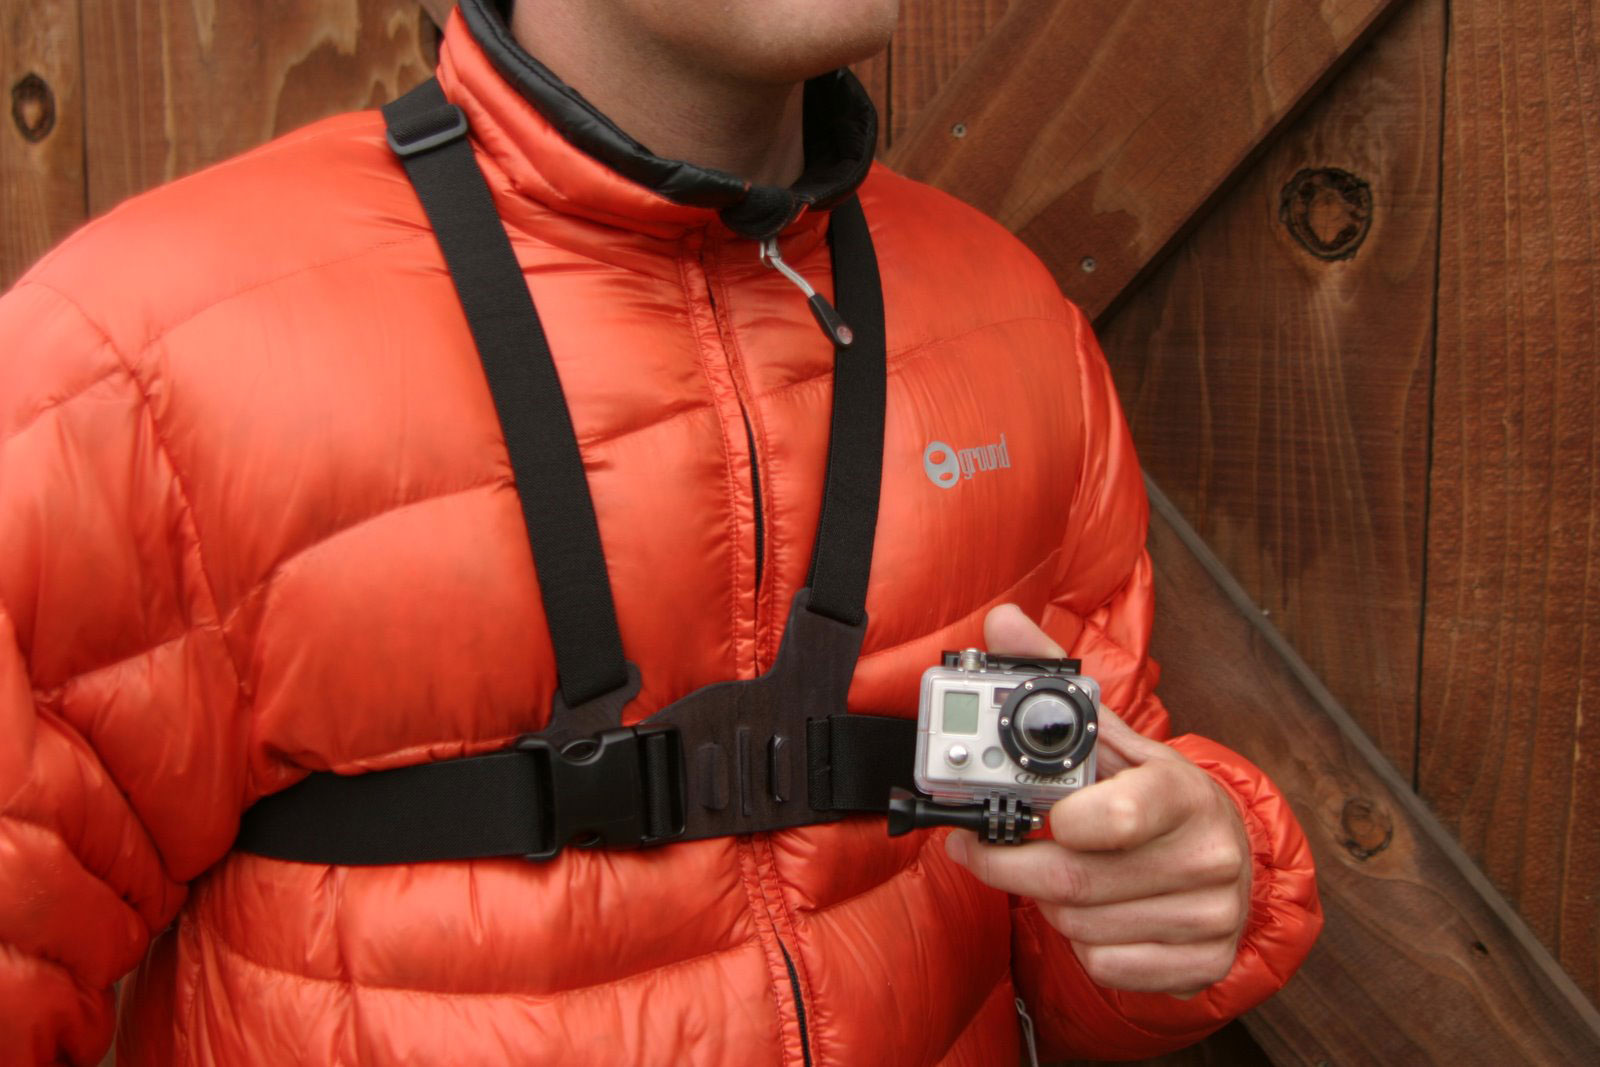 "Surf Chest harness for your quick-release HERO camera. Makes it easy to capture immersive video and photo footage from, well. your chest. Perfect for skiing, mountain biking, motocross, paddle sports, or any activity where you want to get a ""lower than the helmet"" view of the action. See more of your arms, knees poles, and skis while skiing. or your arms and handlebars while biking or riding your motorcycle. Recommended as a more immersive way to film than on the helmet.One size fits all adjustability. Compatible with all GoPro quick-release cameras including the Helmet HERO Wide, Motorsports HERO Wide, Motorsports HERO, Surf HERO, and WIDE HERO cameras. Not compatible with the Digital HERO 5 Wrist Camera.Key Features of the Go Pro Chest Mount Camera Harness: 1 Adjustable Chest Harness 1 Vertical Surface ""J-Hook"" Buckle Warranty: 1 Year - $39.99"